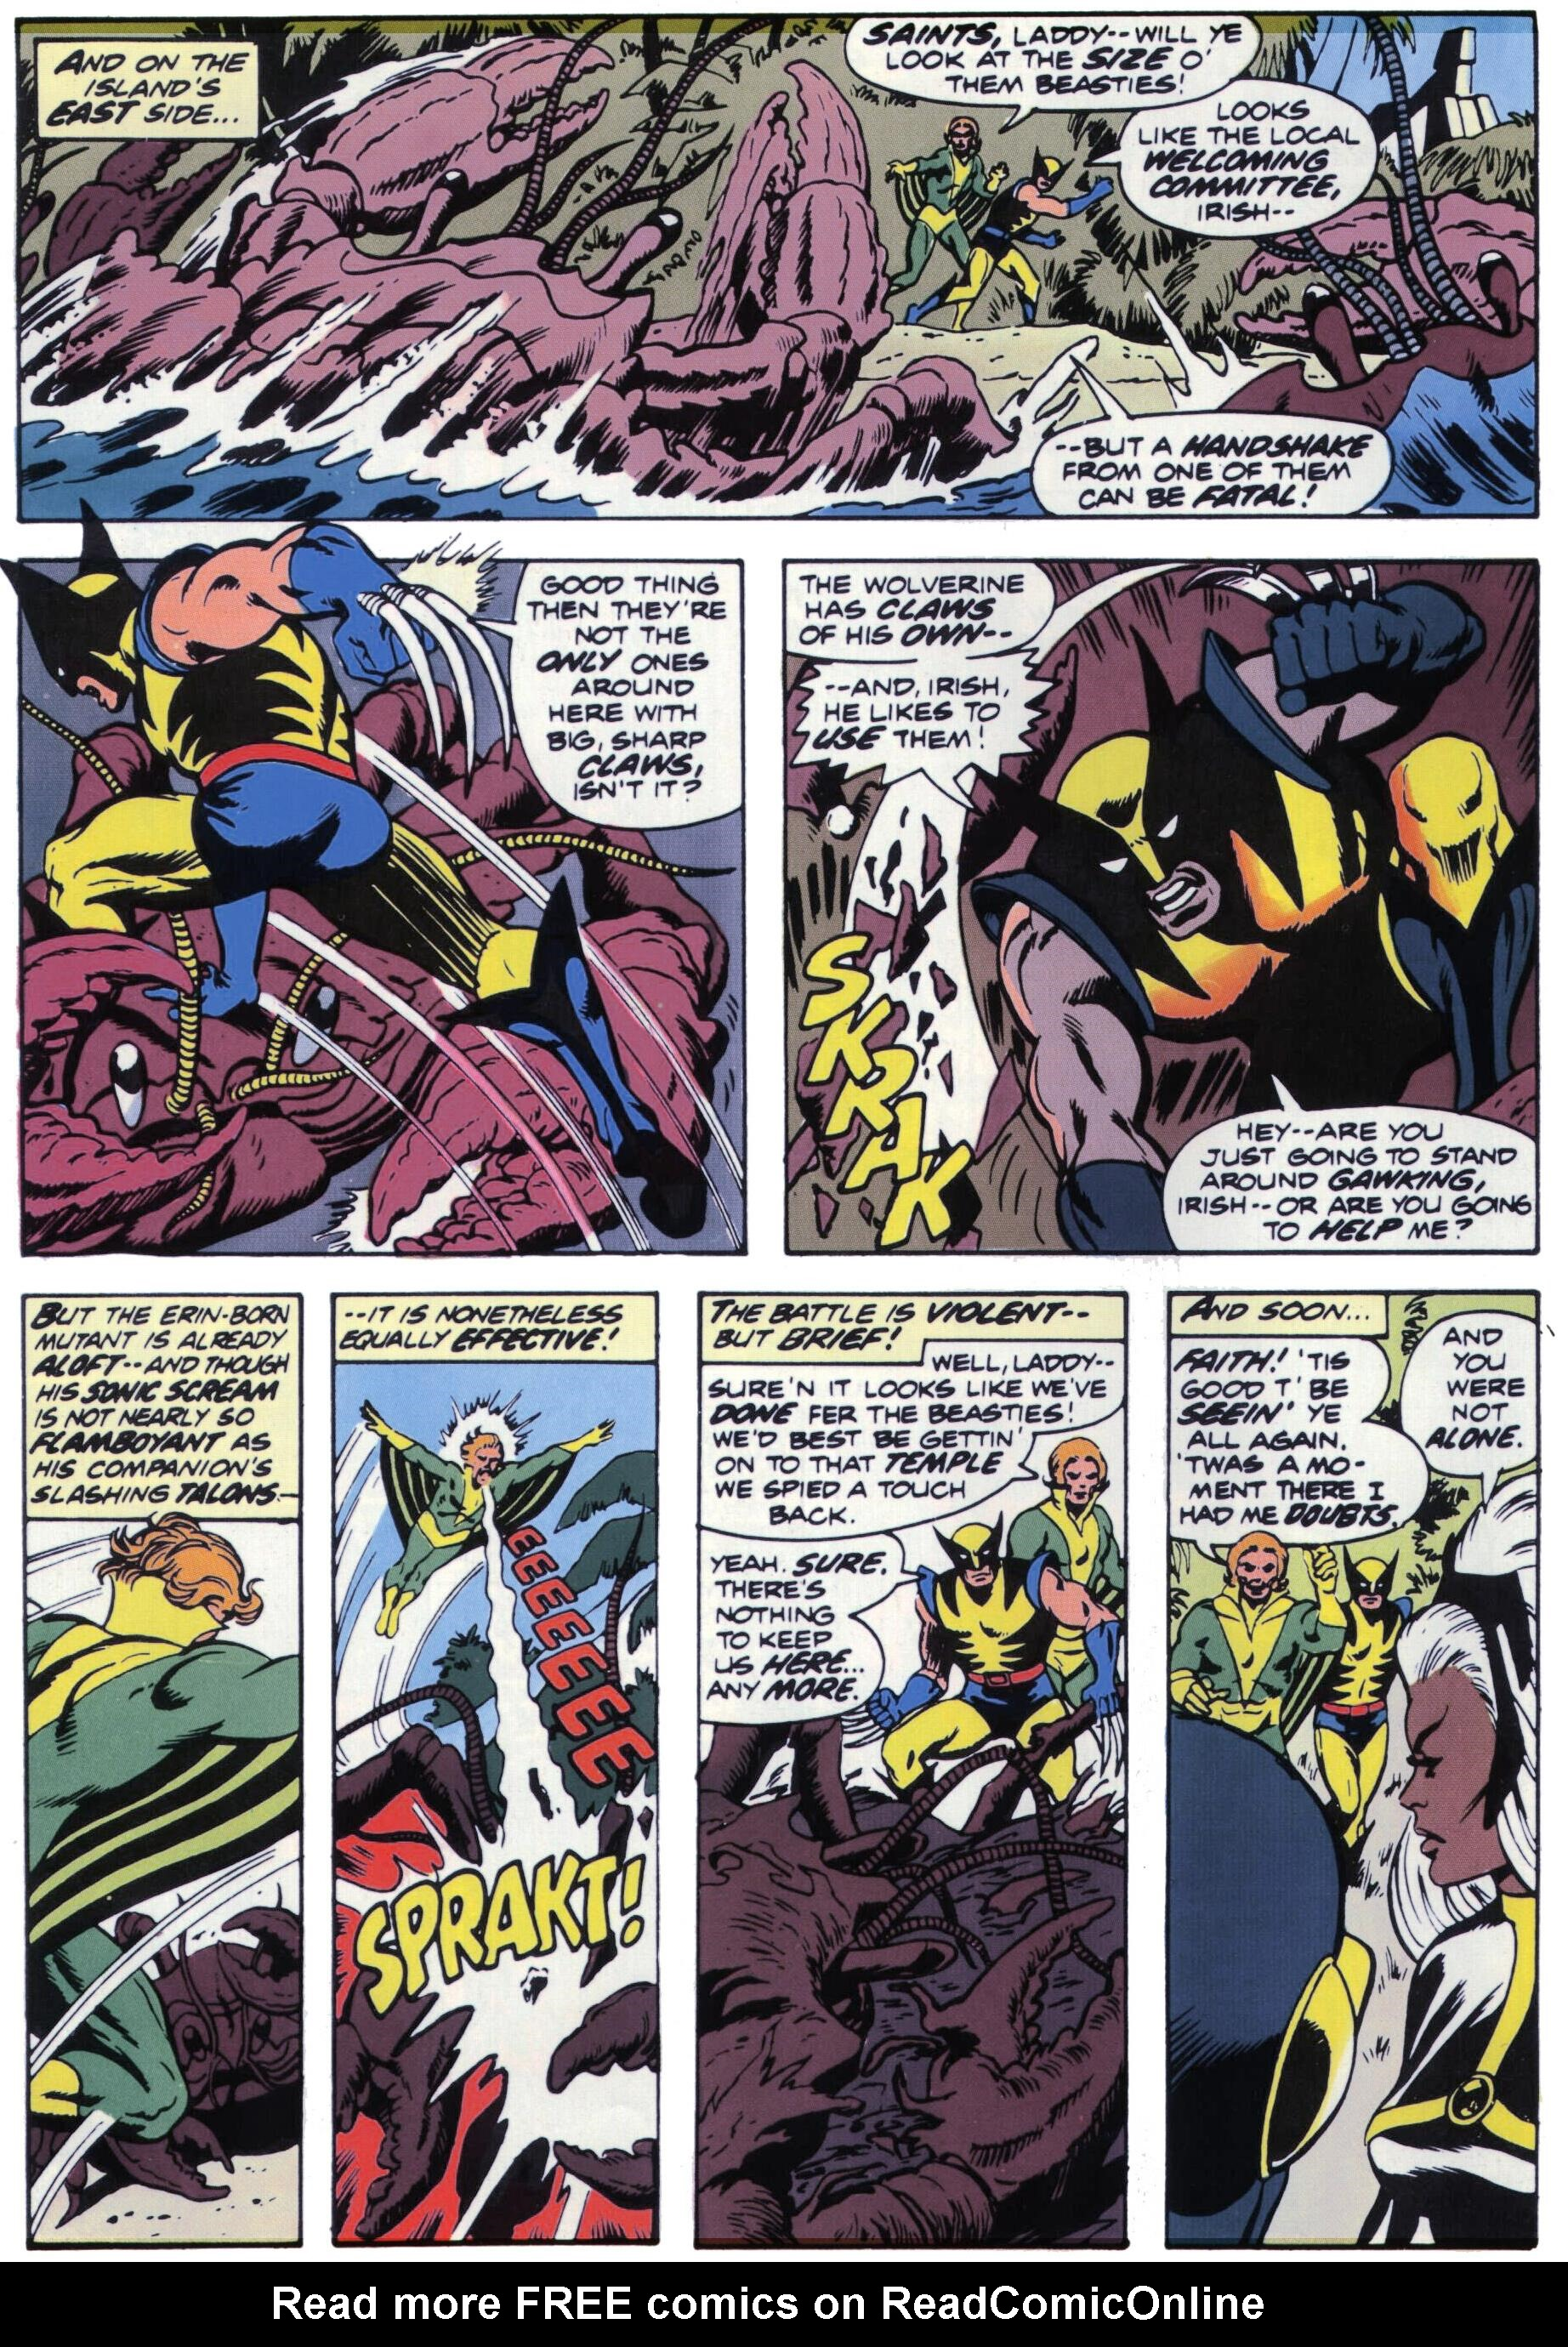 Read online Giant-Size X-Men comic -  Issue #1 - 25